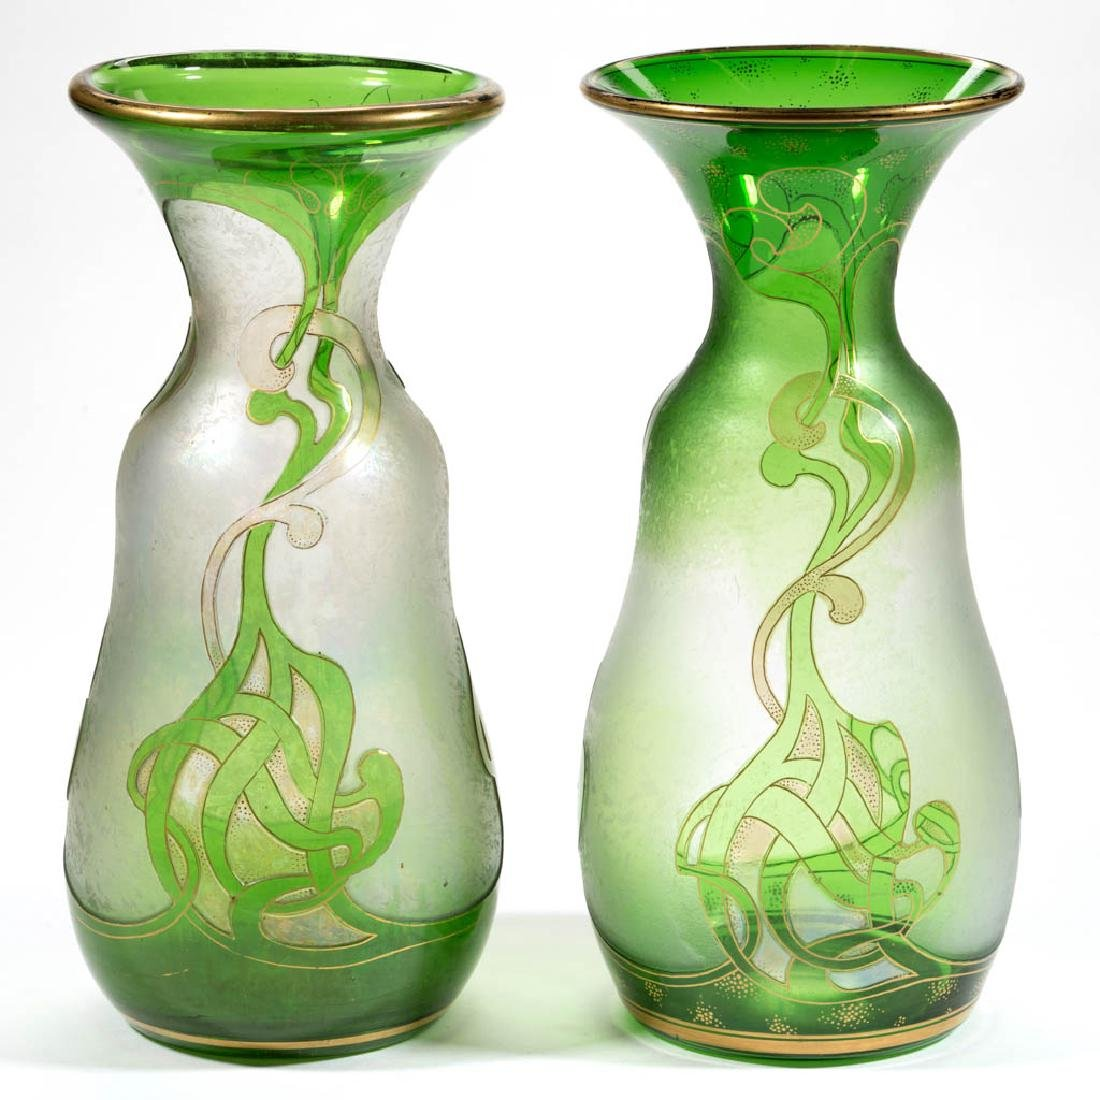 DORFLINGER HONESDALE CAMEO ART GLASS NEAR PAIR OF VASES